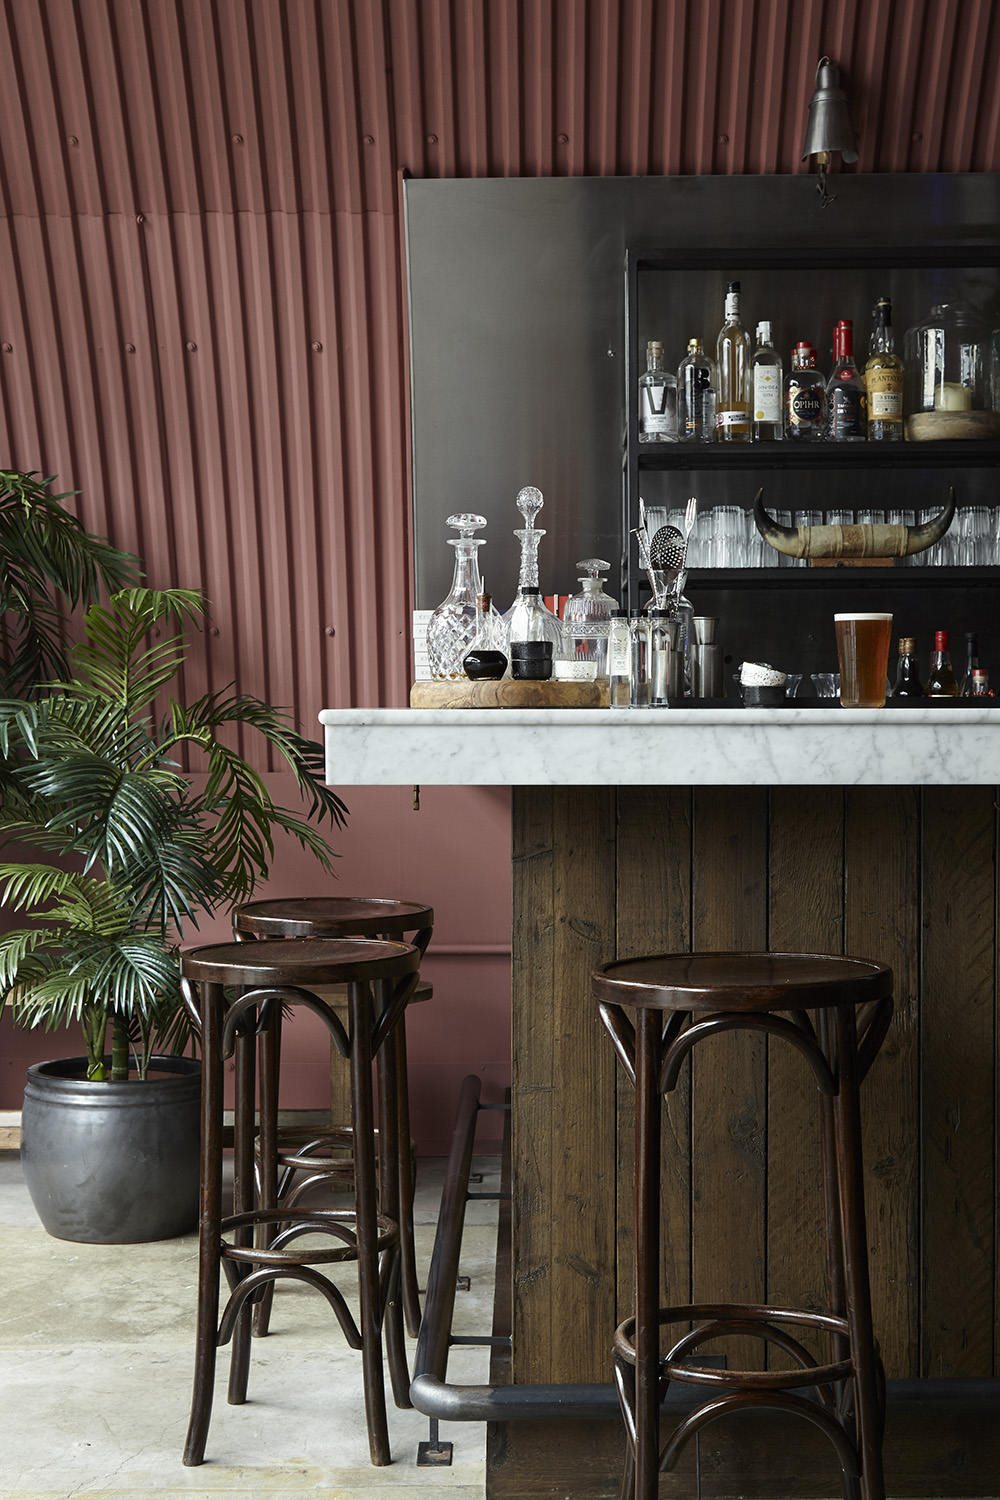 kricket-Brixton-bar-london-design-run-for-the-hills.jpg